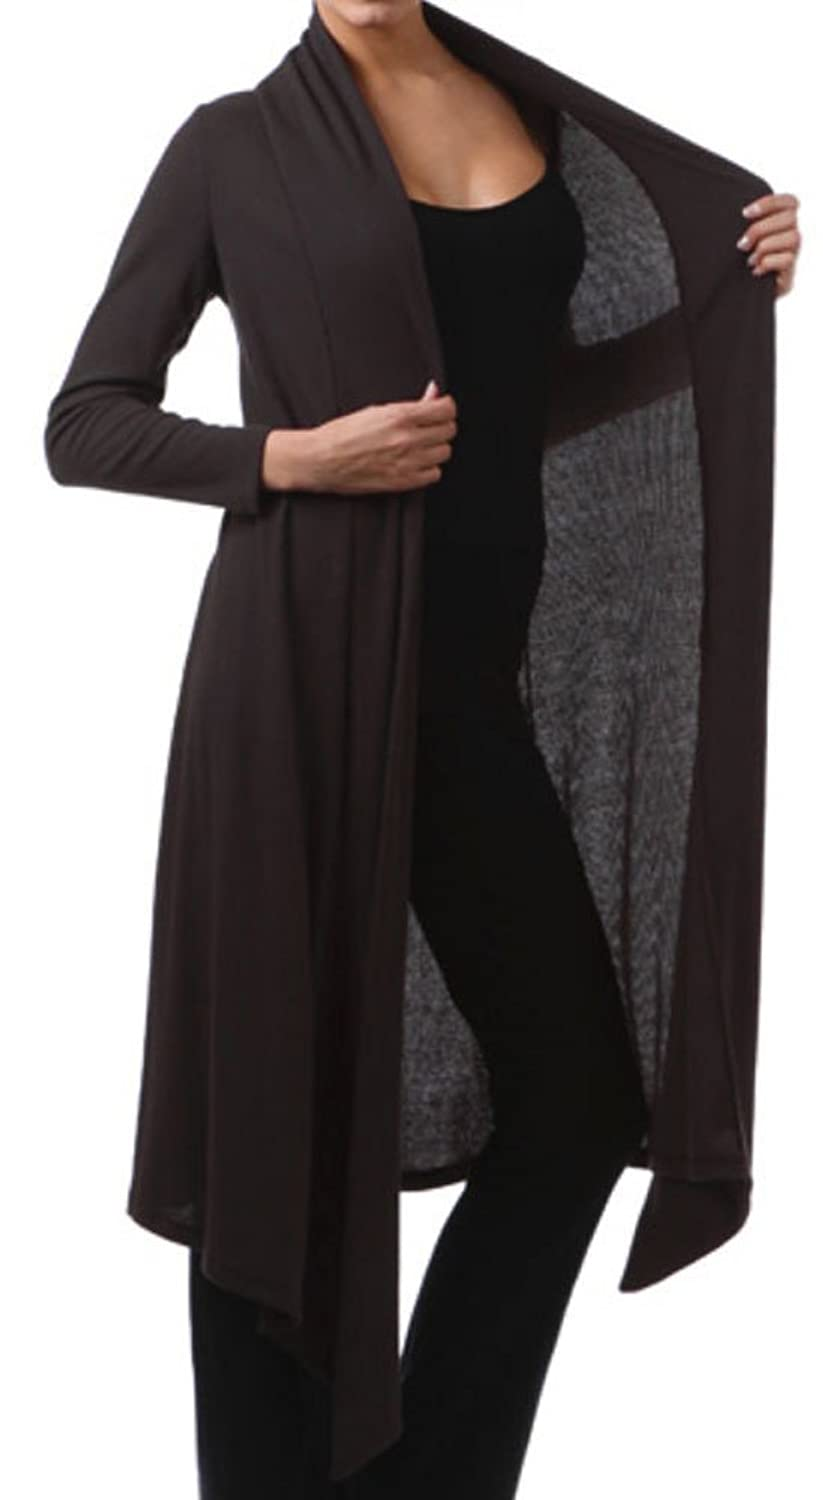 Funfash Plus Size Clothing for Women Black Cardigan Duster Sweater